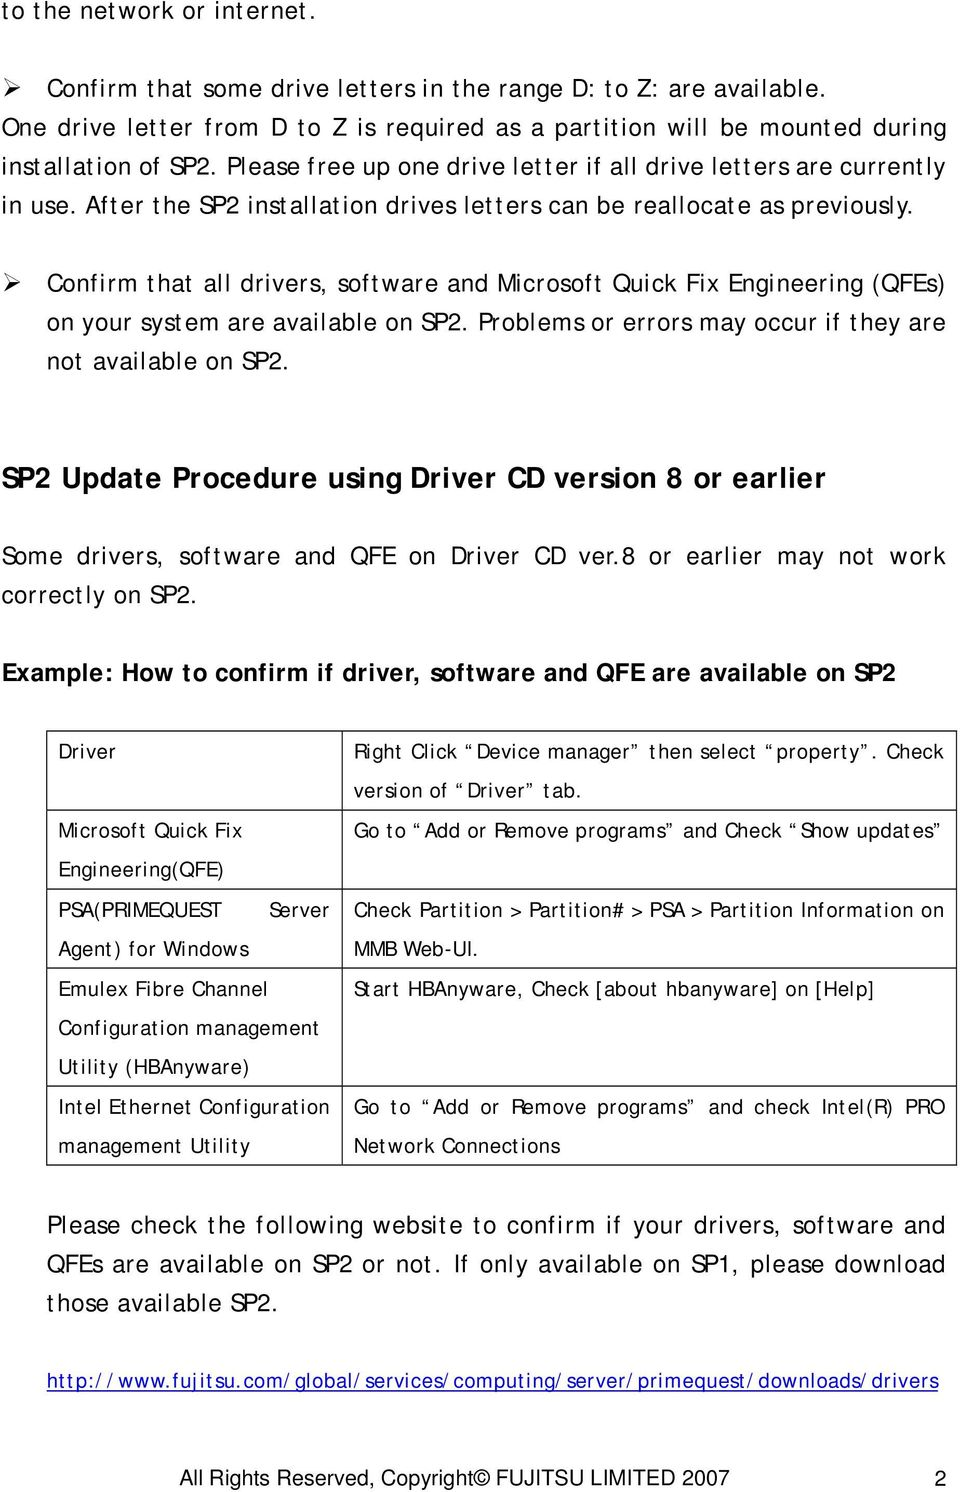 Confirm that all drivers, software and Microsoft Quick Fix Engineering (QFEs) on your system are available on SP2. Problems or errors may occur if they are not available on SP2.